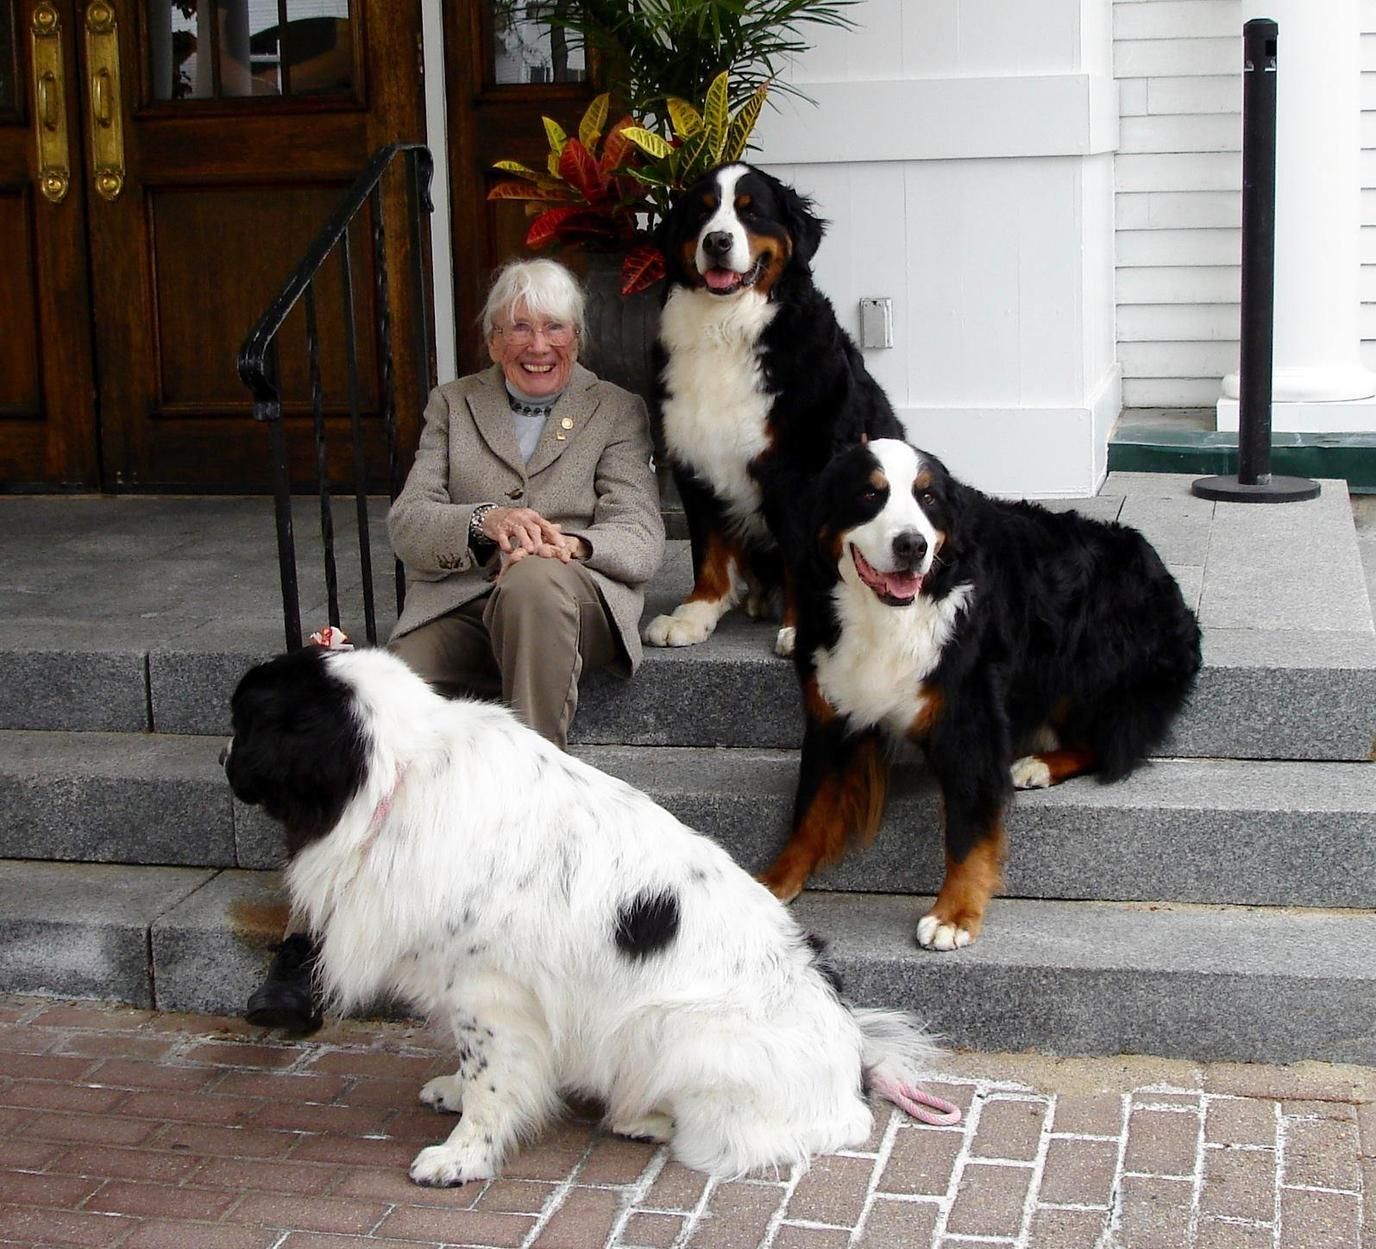 A grandmother alongside her dogs at the Harraseeket Inn